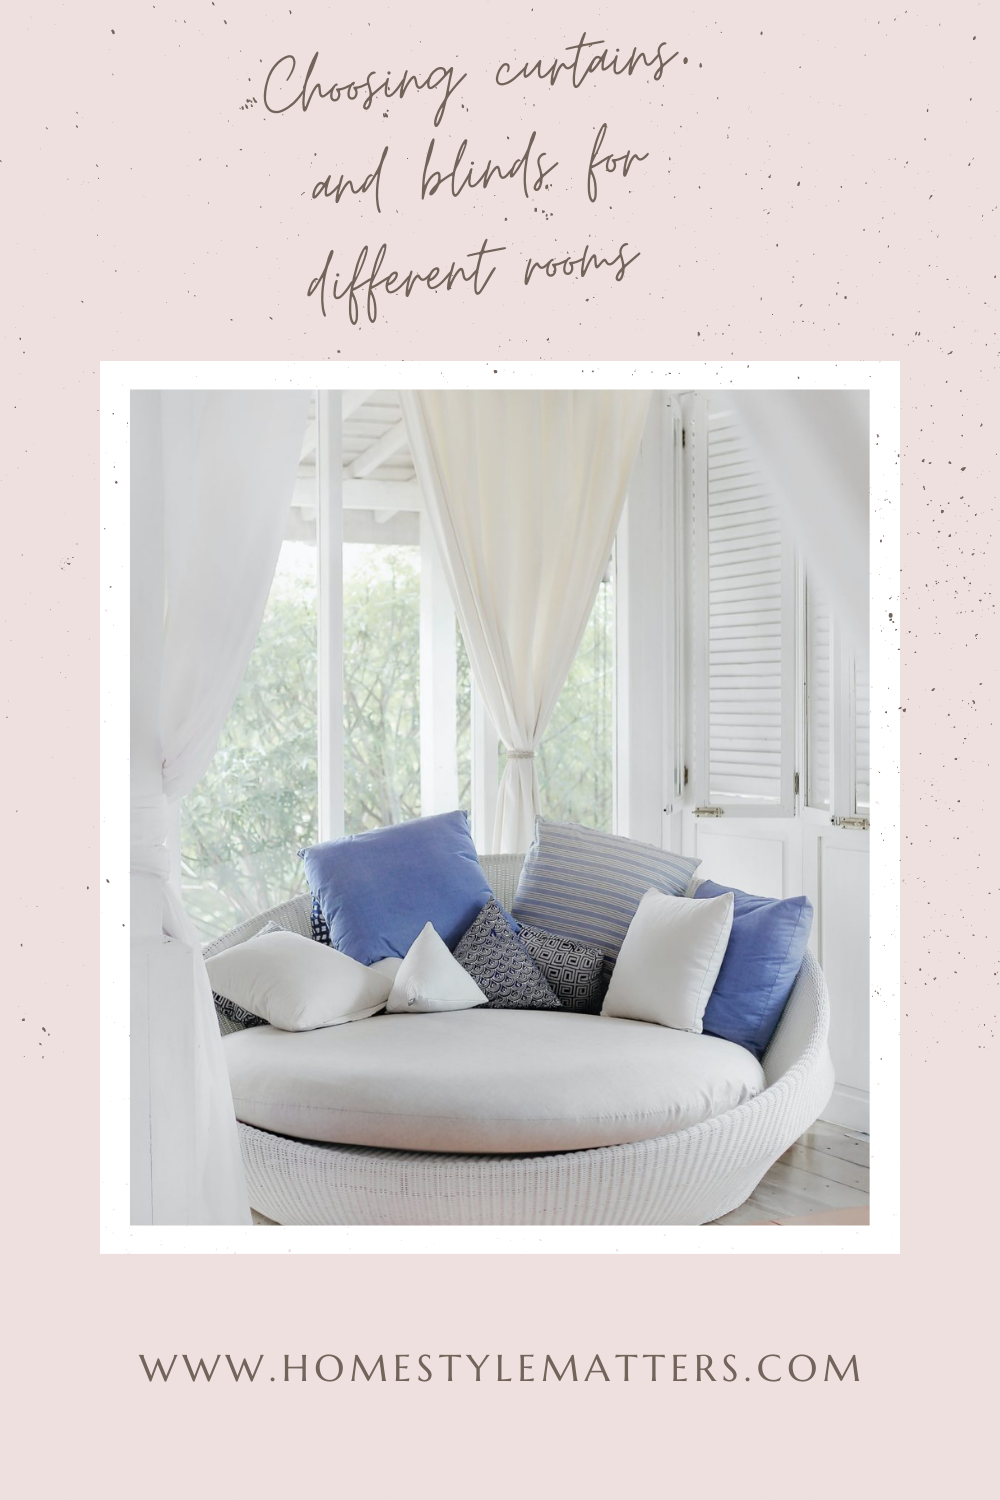 Choosing curtains and blinds for different rooms 1